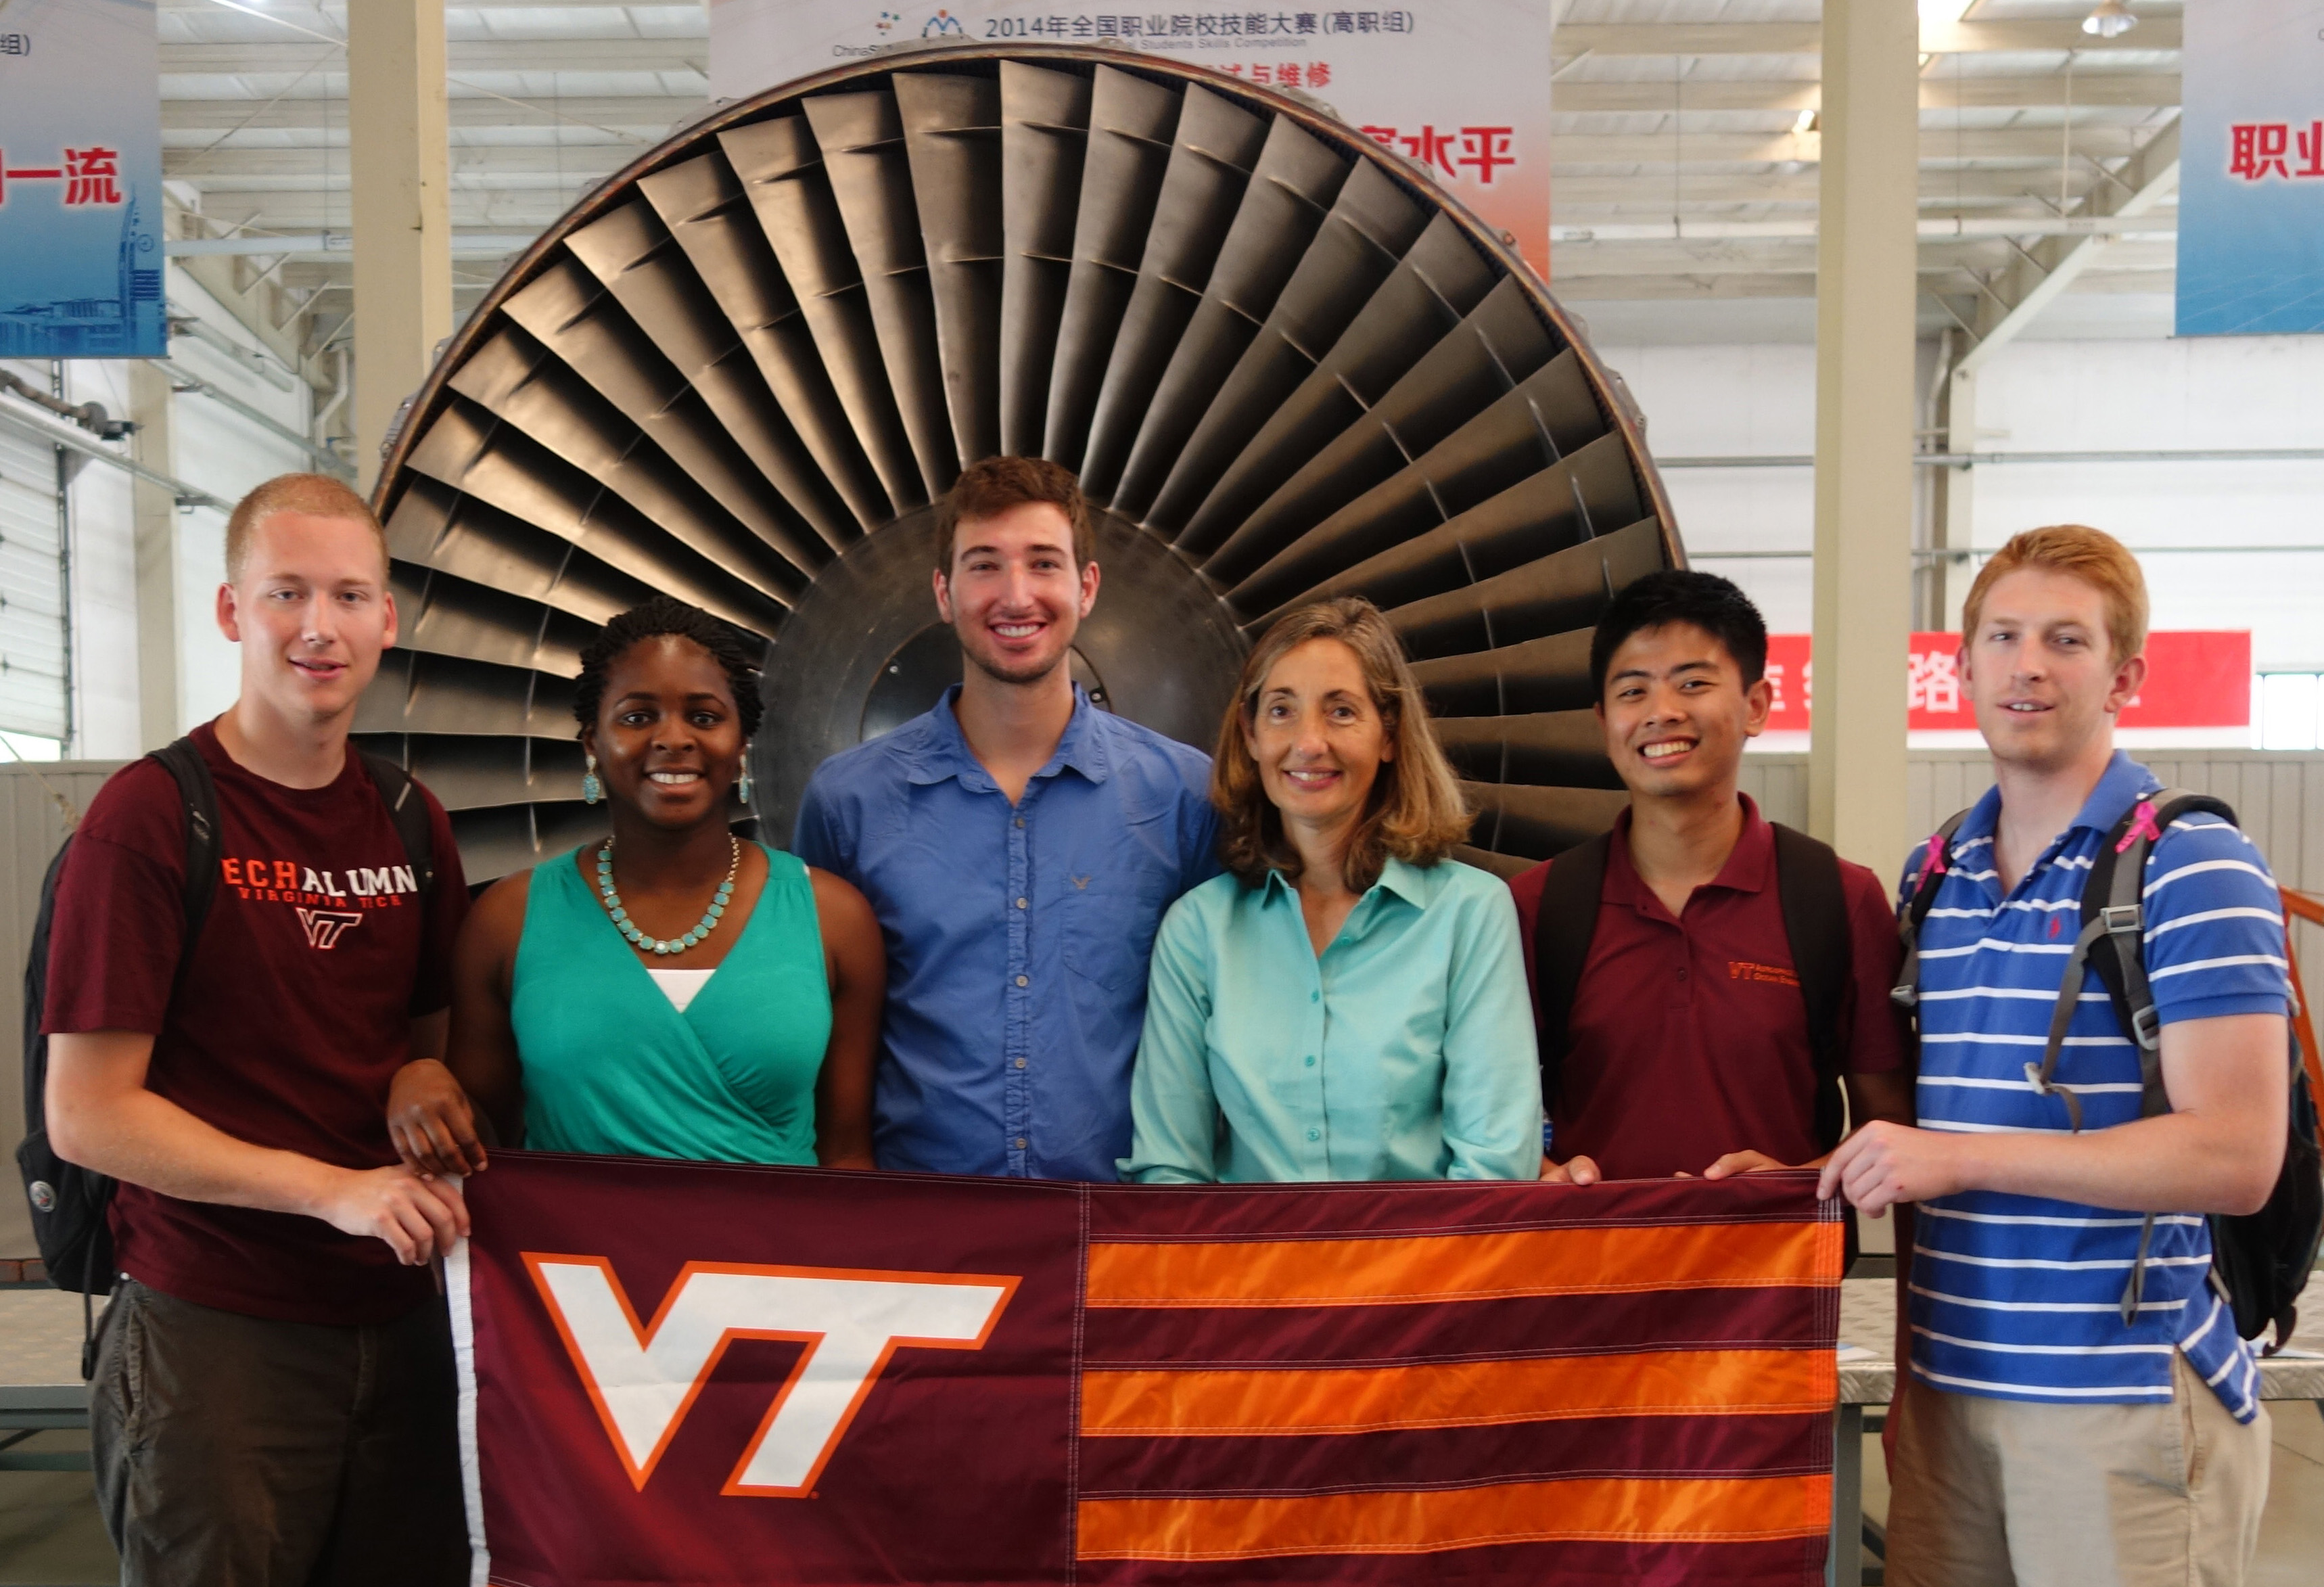 From left: Cody Reed, Adwoa Baah-Dwomoh, Eric Santure, Kim Lester, Howard Chung and Nick Pera; all of the college of engineering.